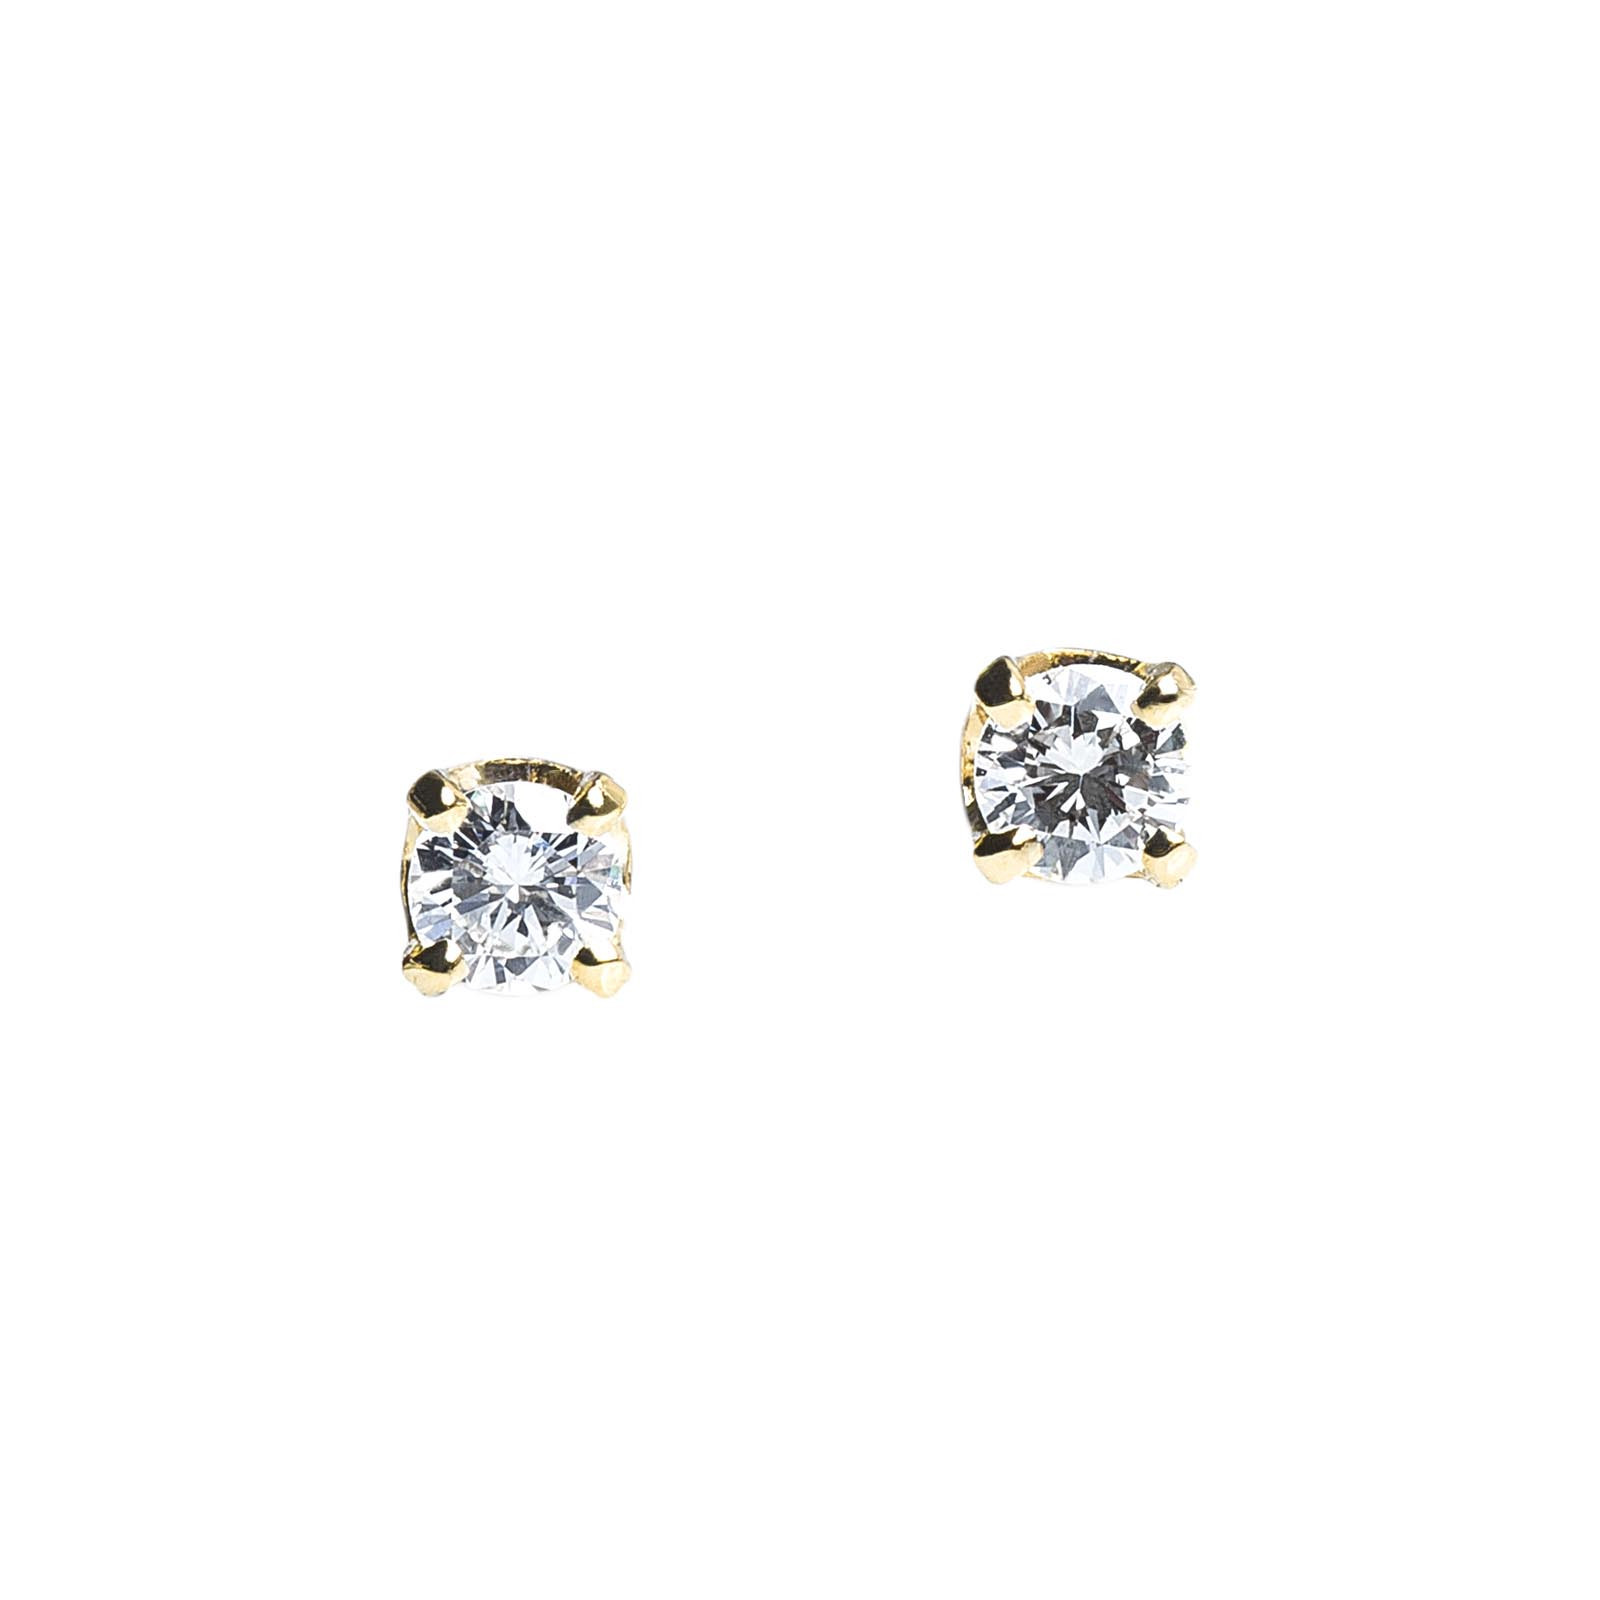 Vintage 0.20 CTW Diamond Stud Earrings